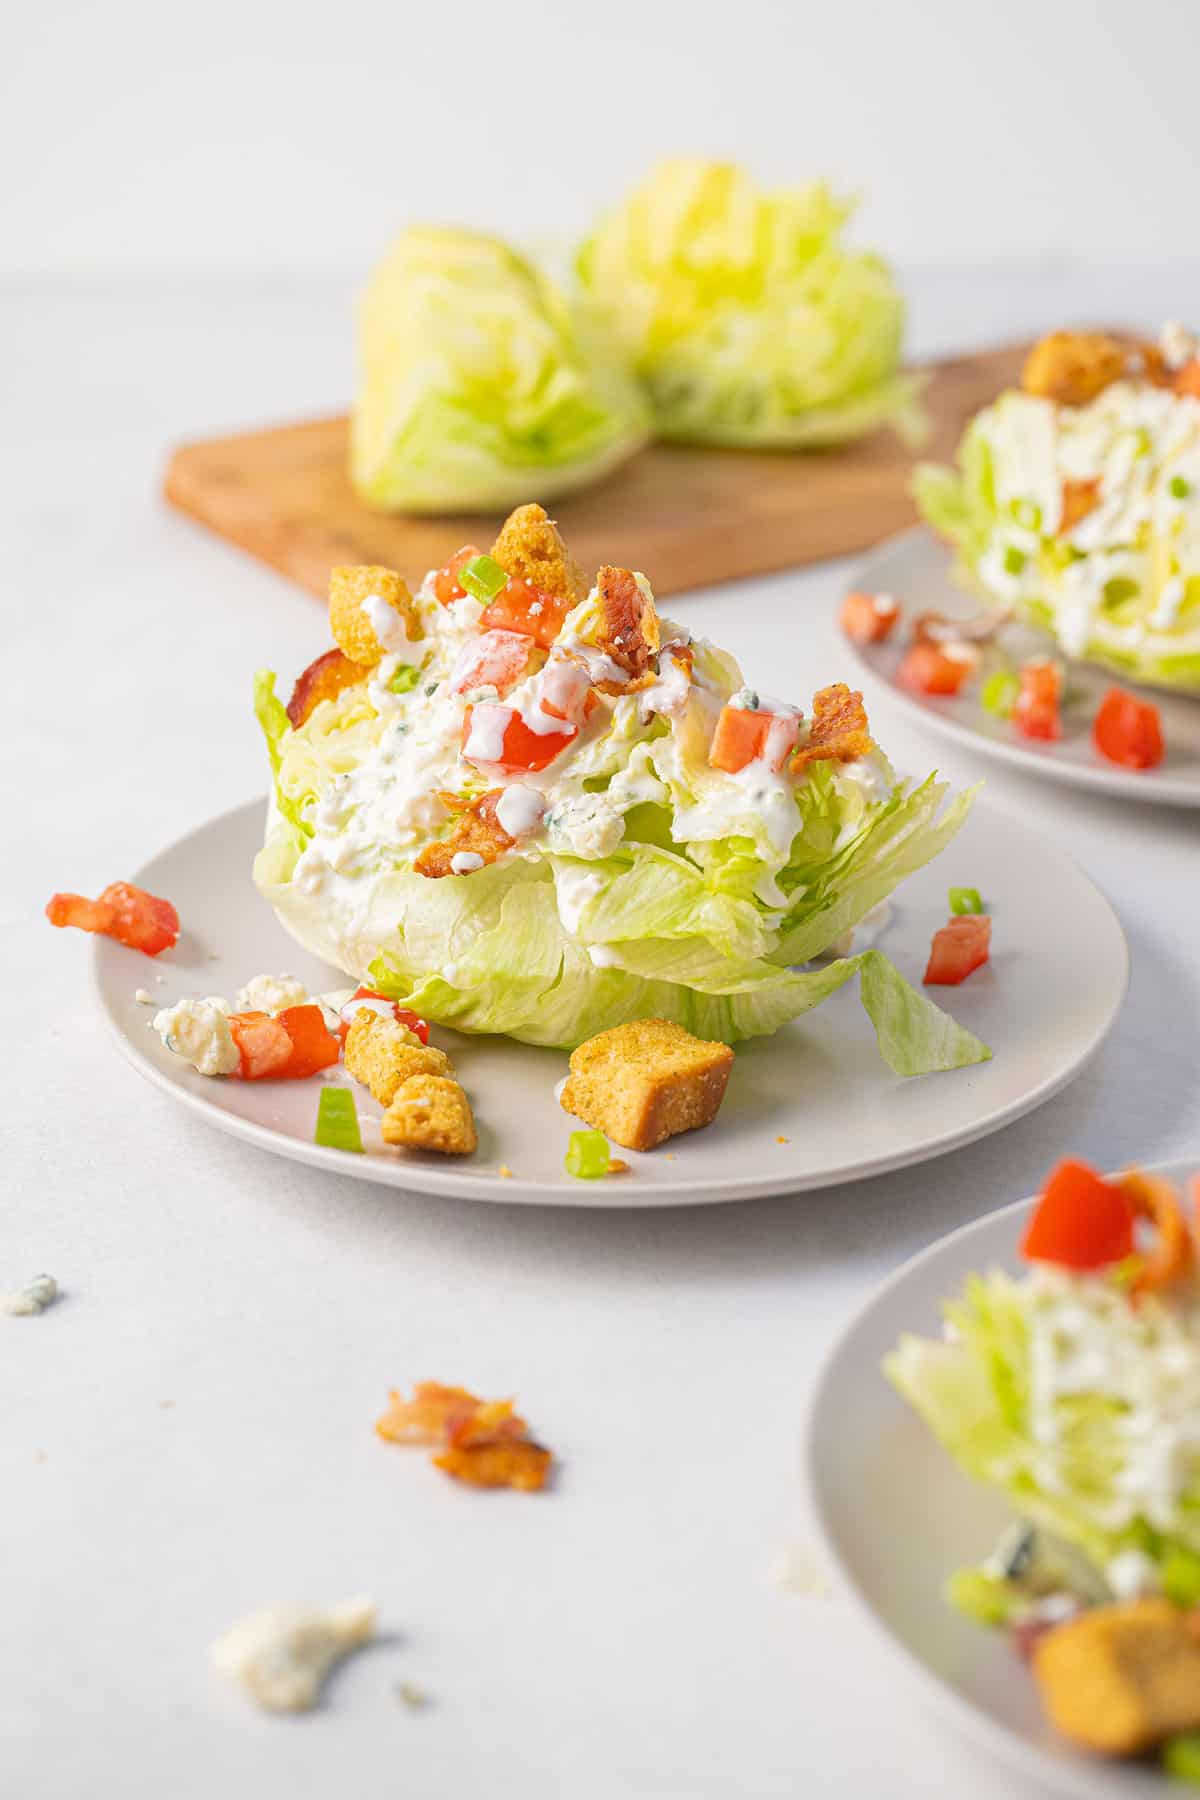 wedge salad on a white plate